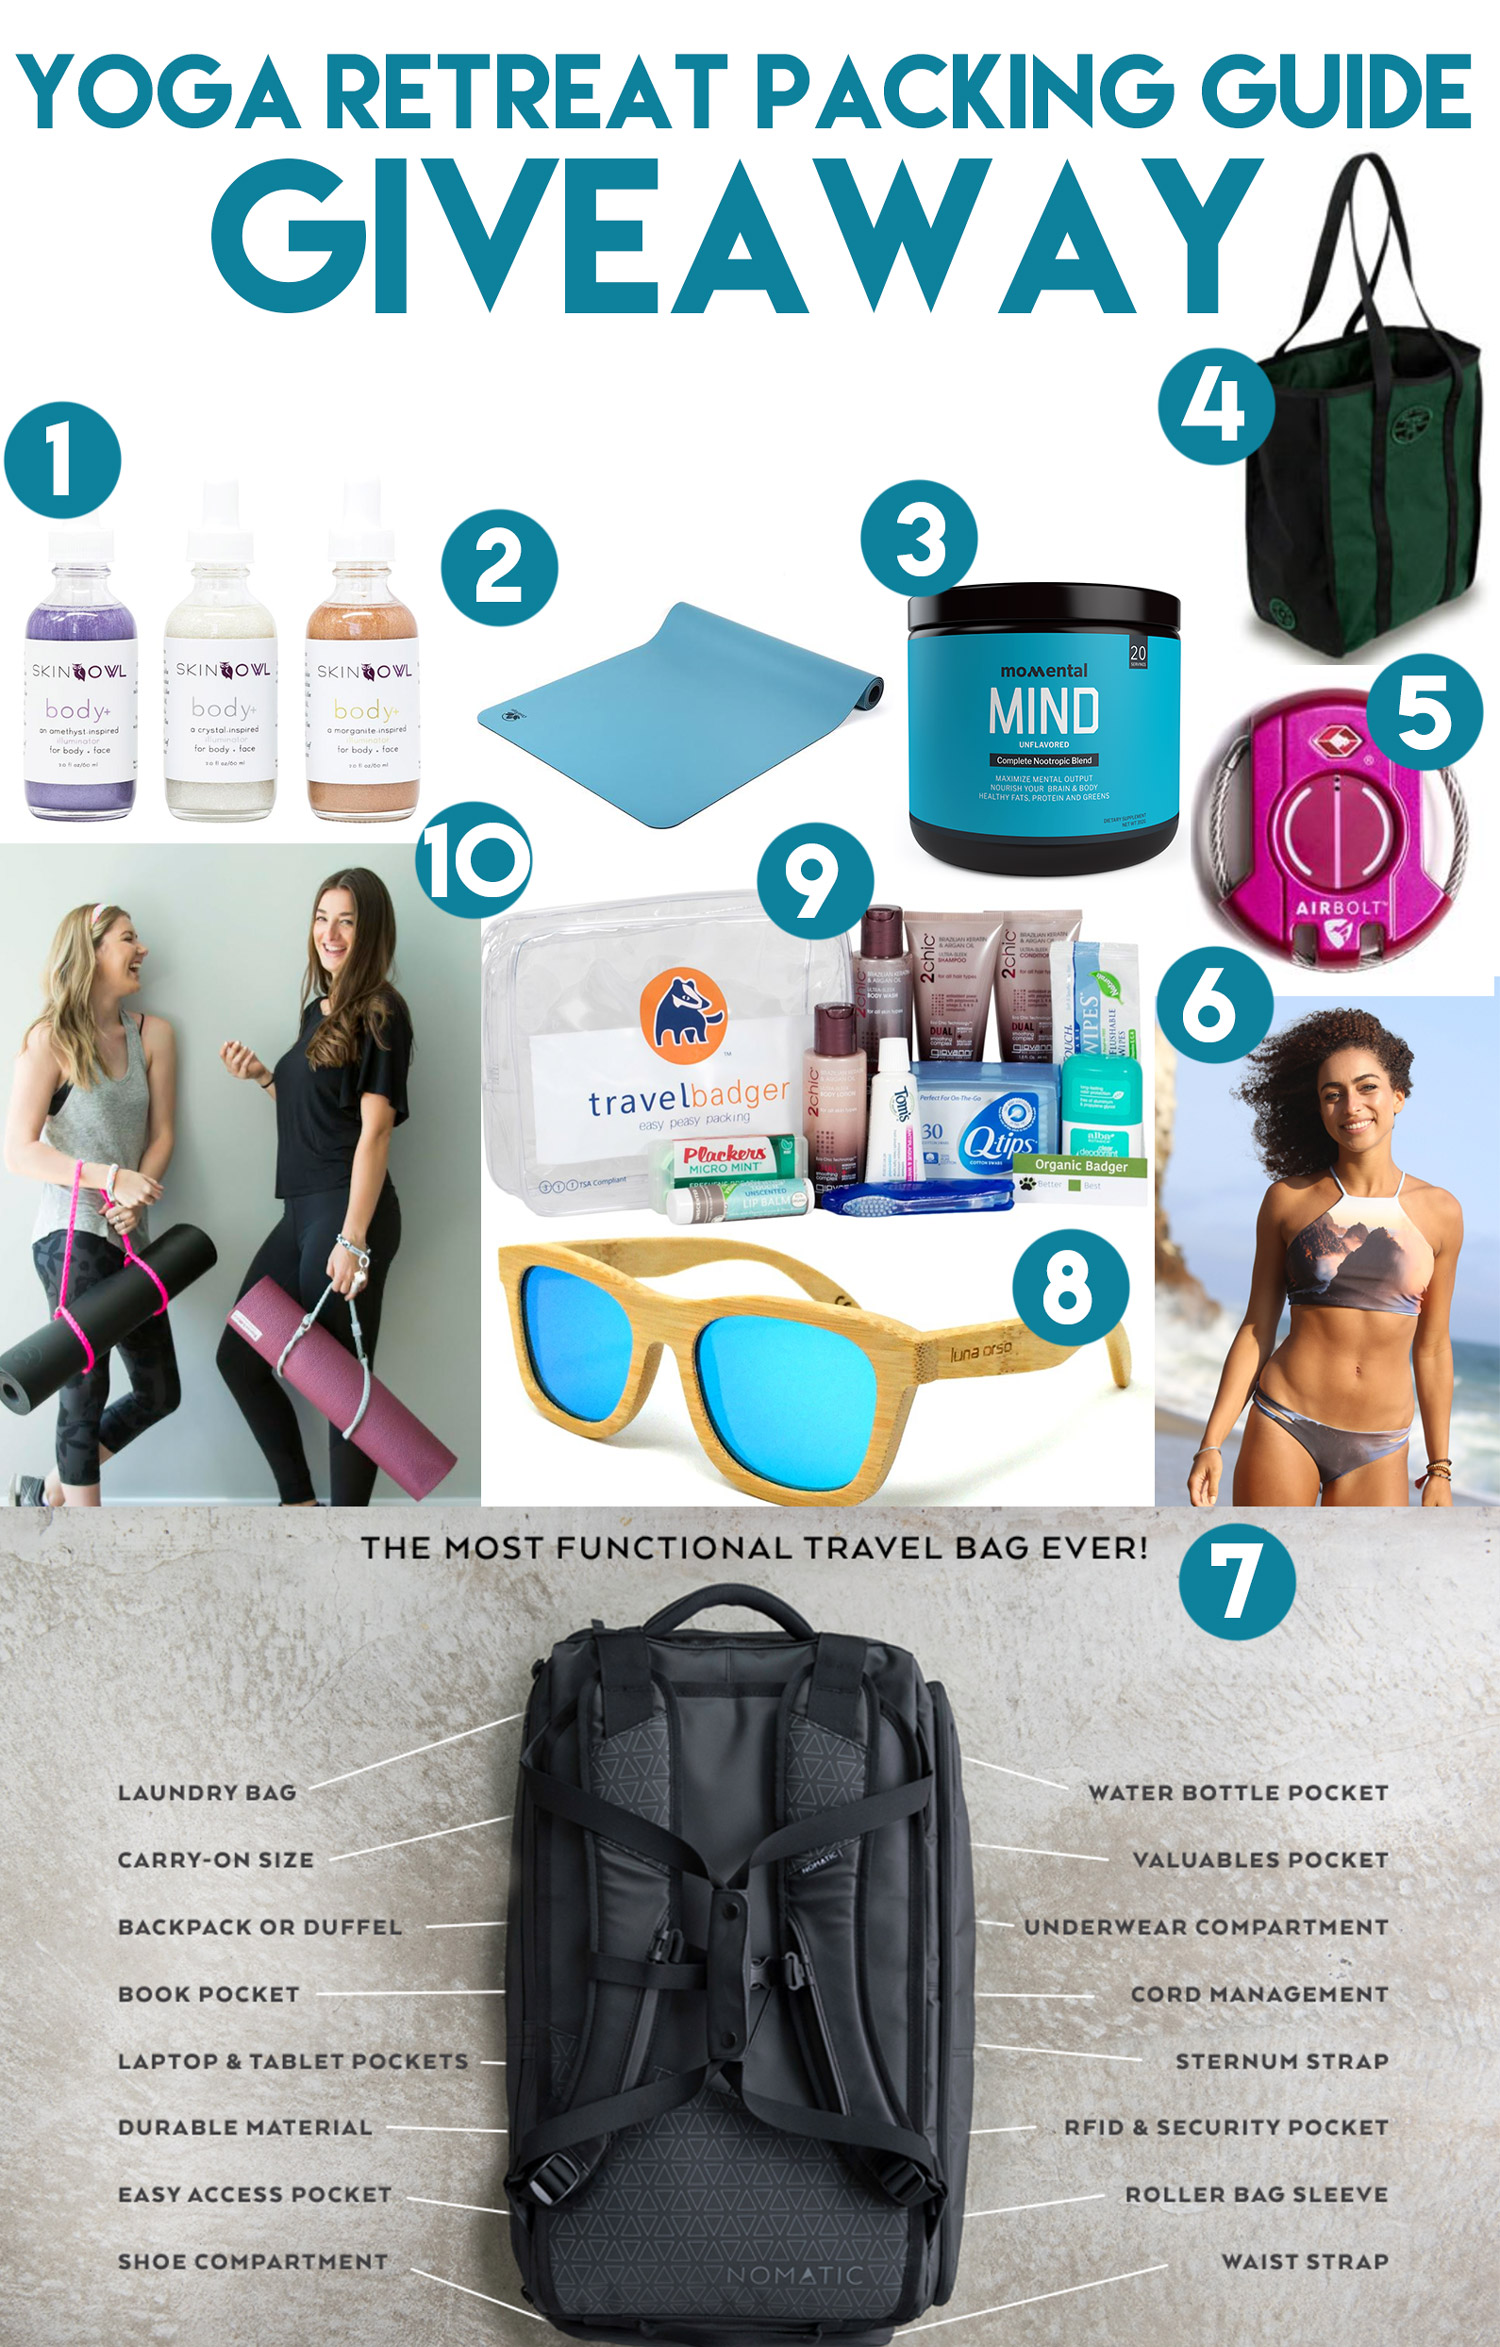 Everything in this year's Yoga Retreat Packing Guide Giveaway - enter to win below!